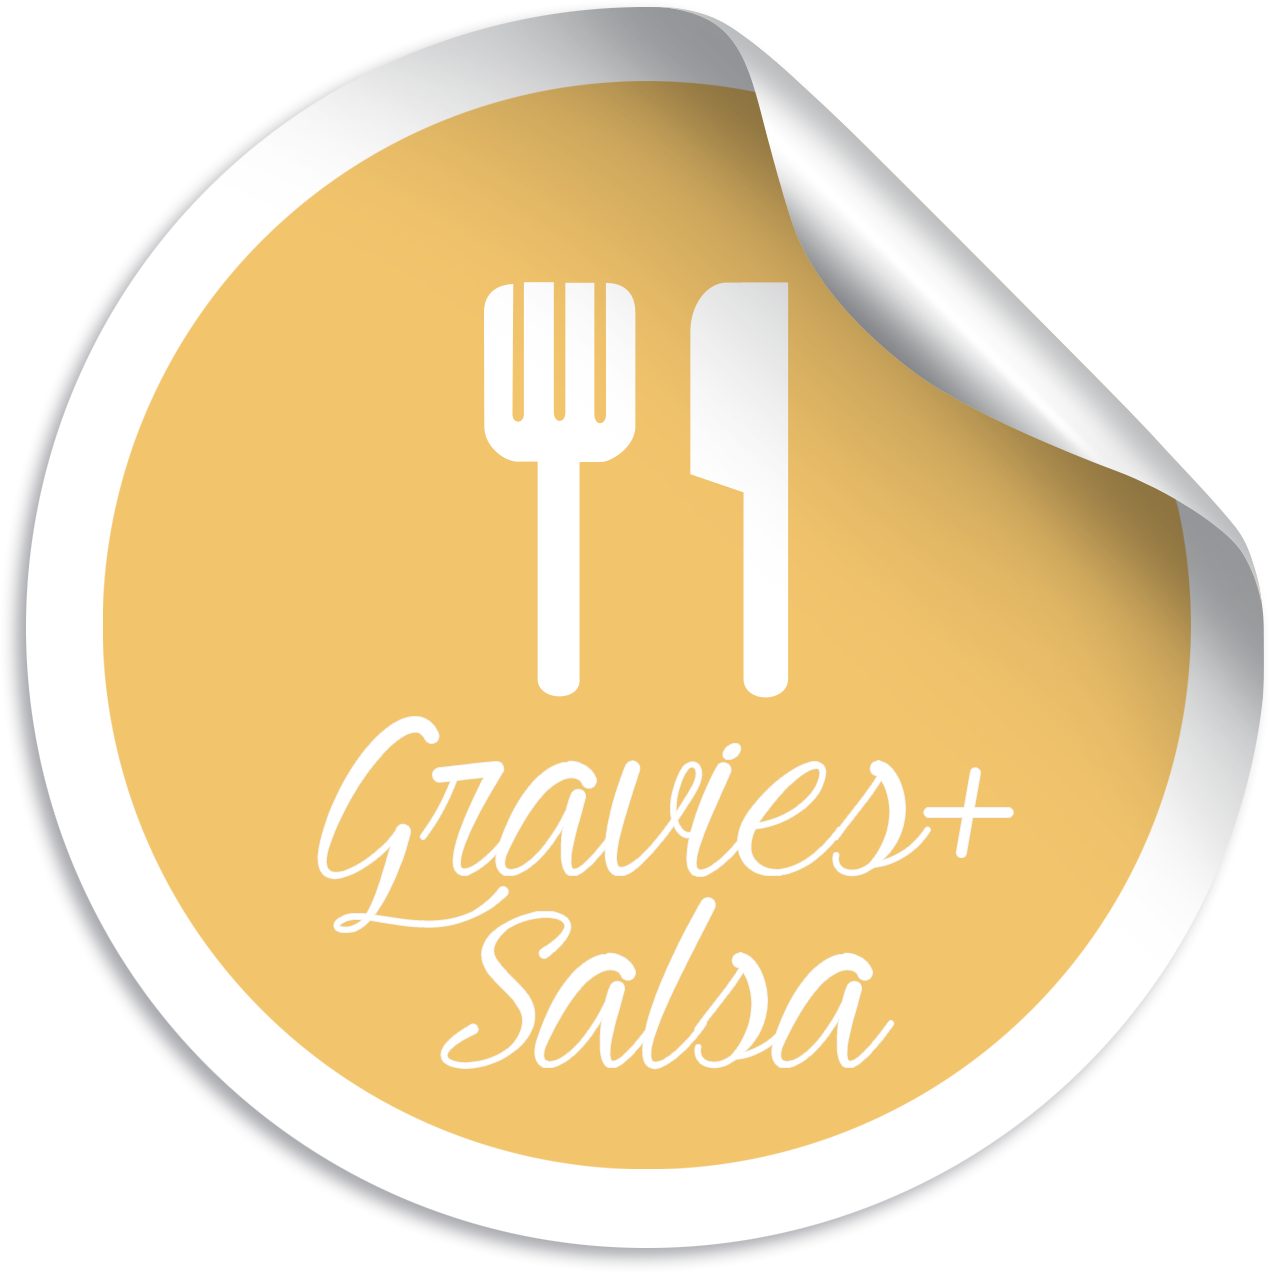 Eat to Live - Gravies & Salsa